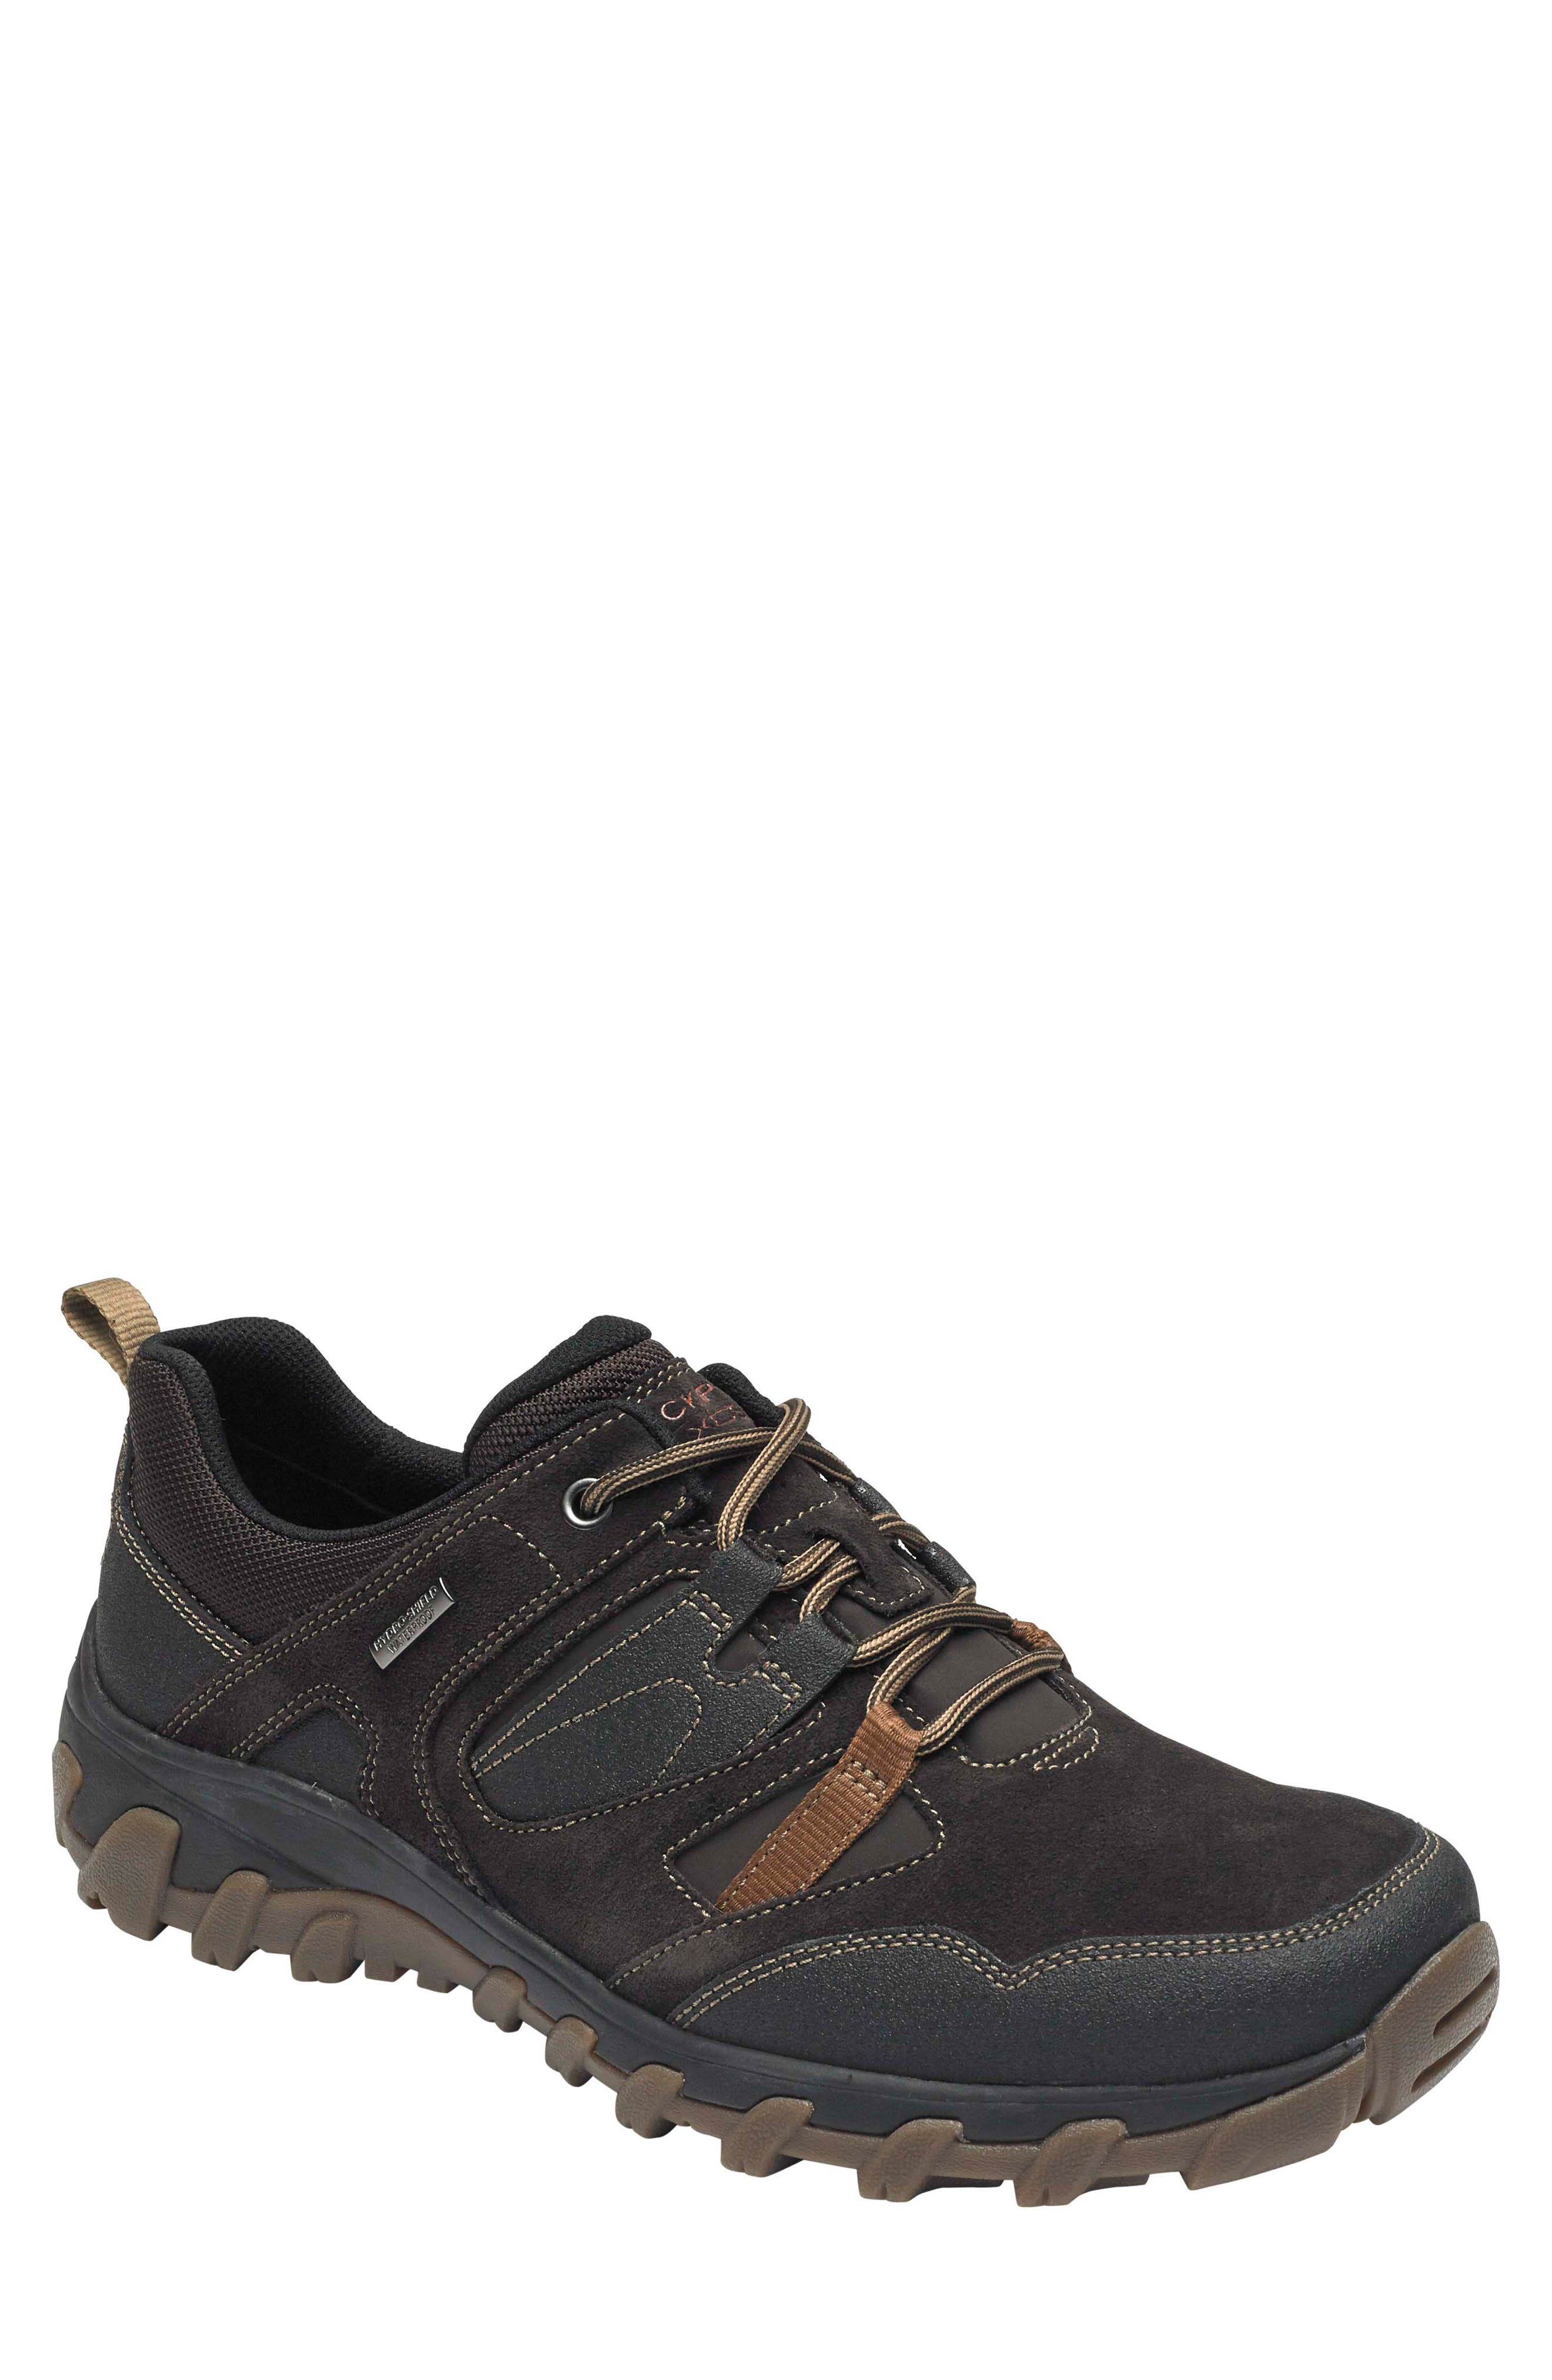 Cold Springs Plus Lace-Up Sneaker,                             Main thumbnail 1, color,                             DARK BROWN LEATHER